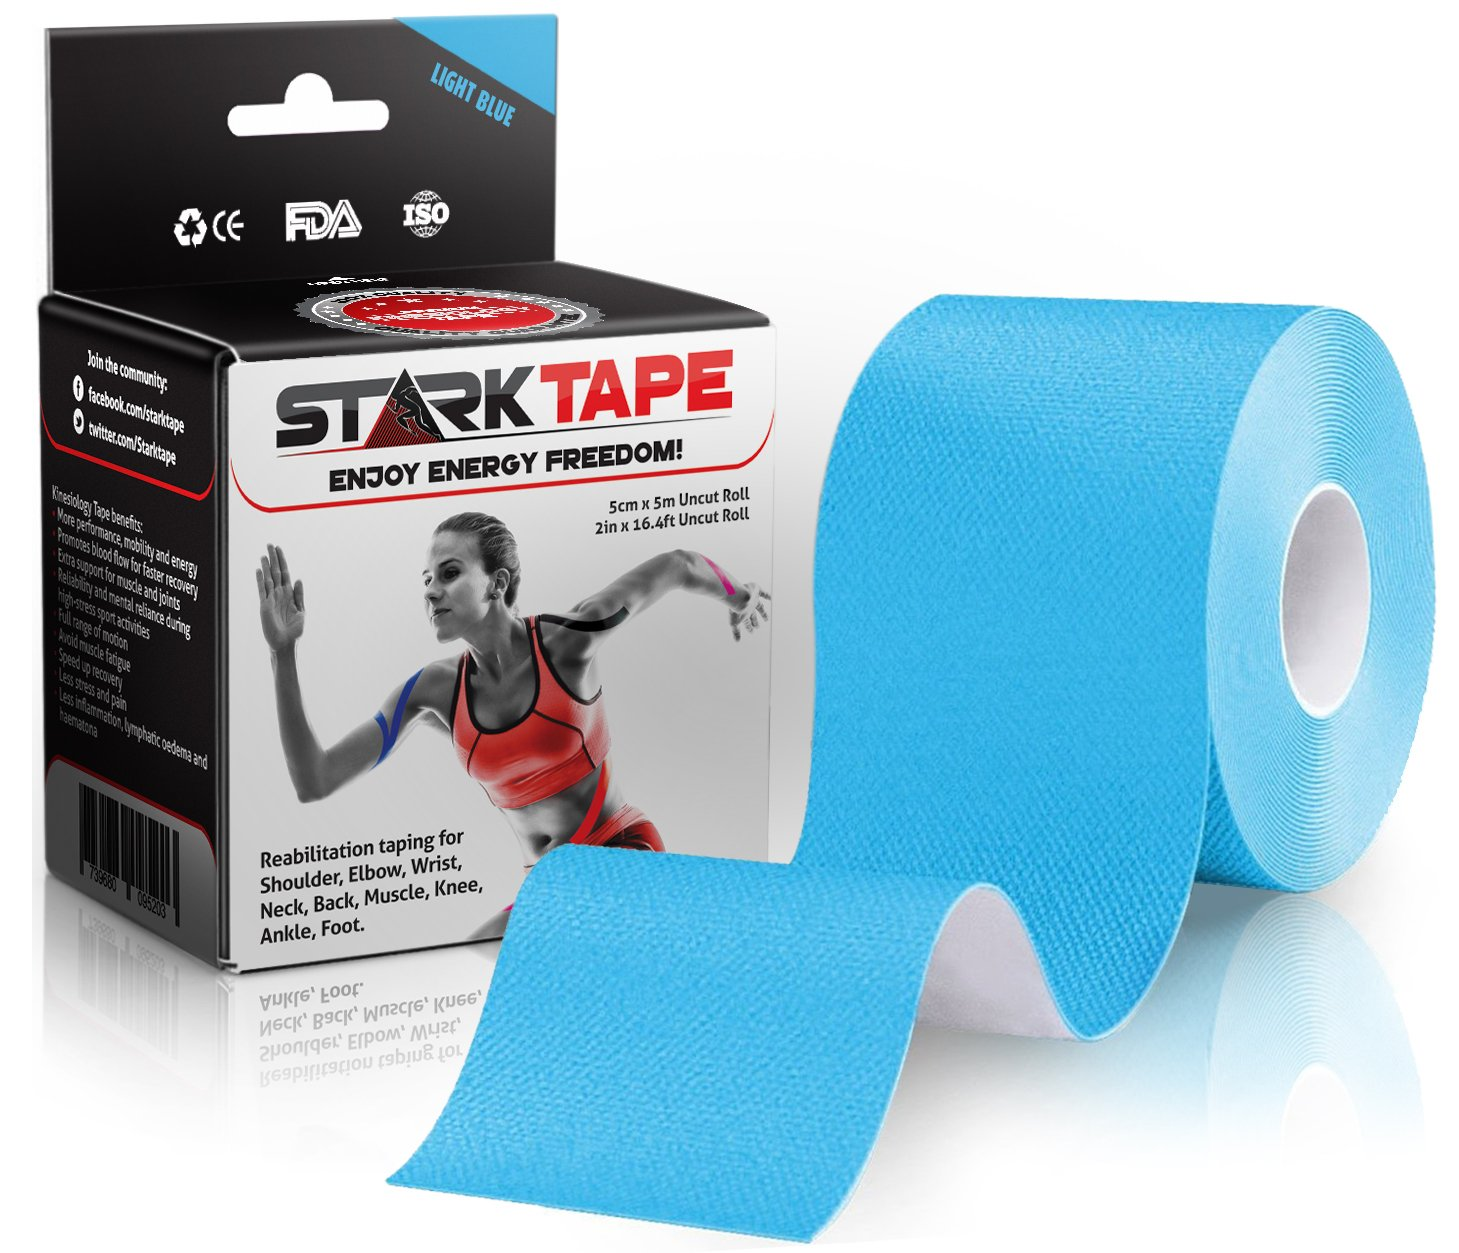 Kinesiology Tape Bulk - Designed to Help Boost Athletic Performance, Reduce Muscle Pain and Ease Inflammation. Easy to Apply, 97% Natural Cotton /3% Spandex